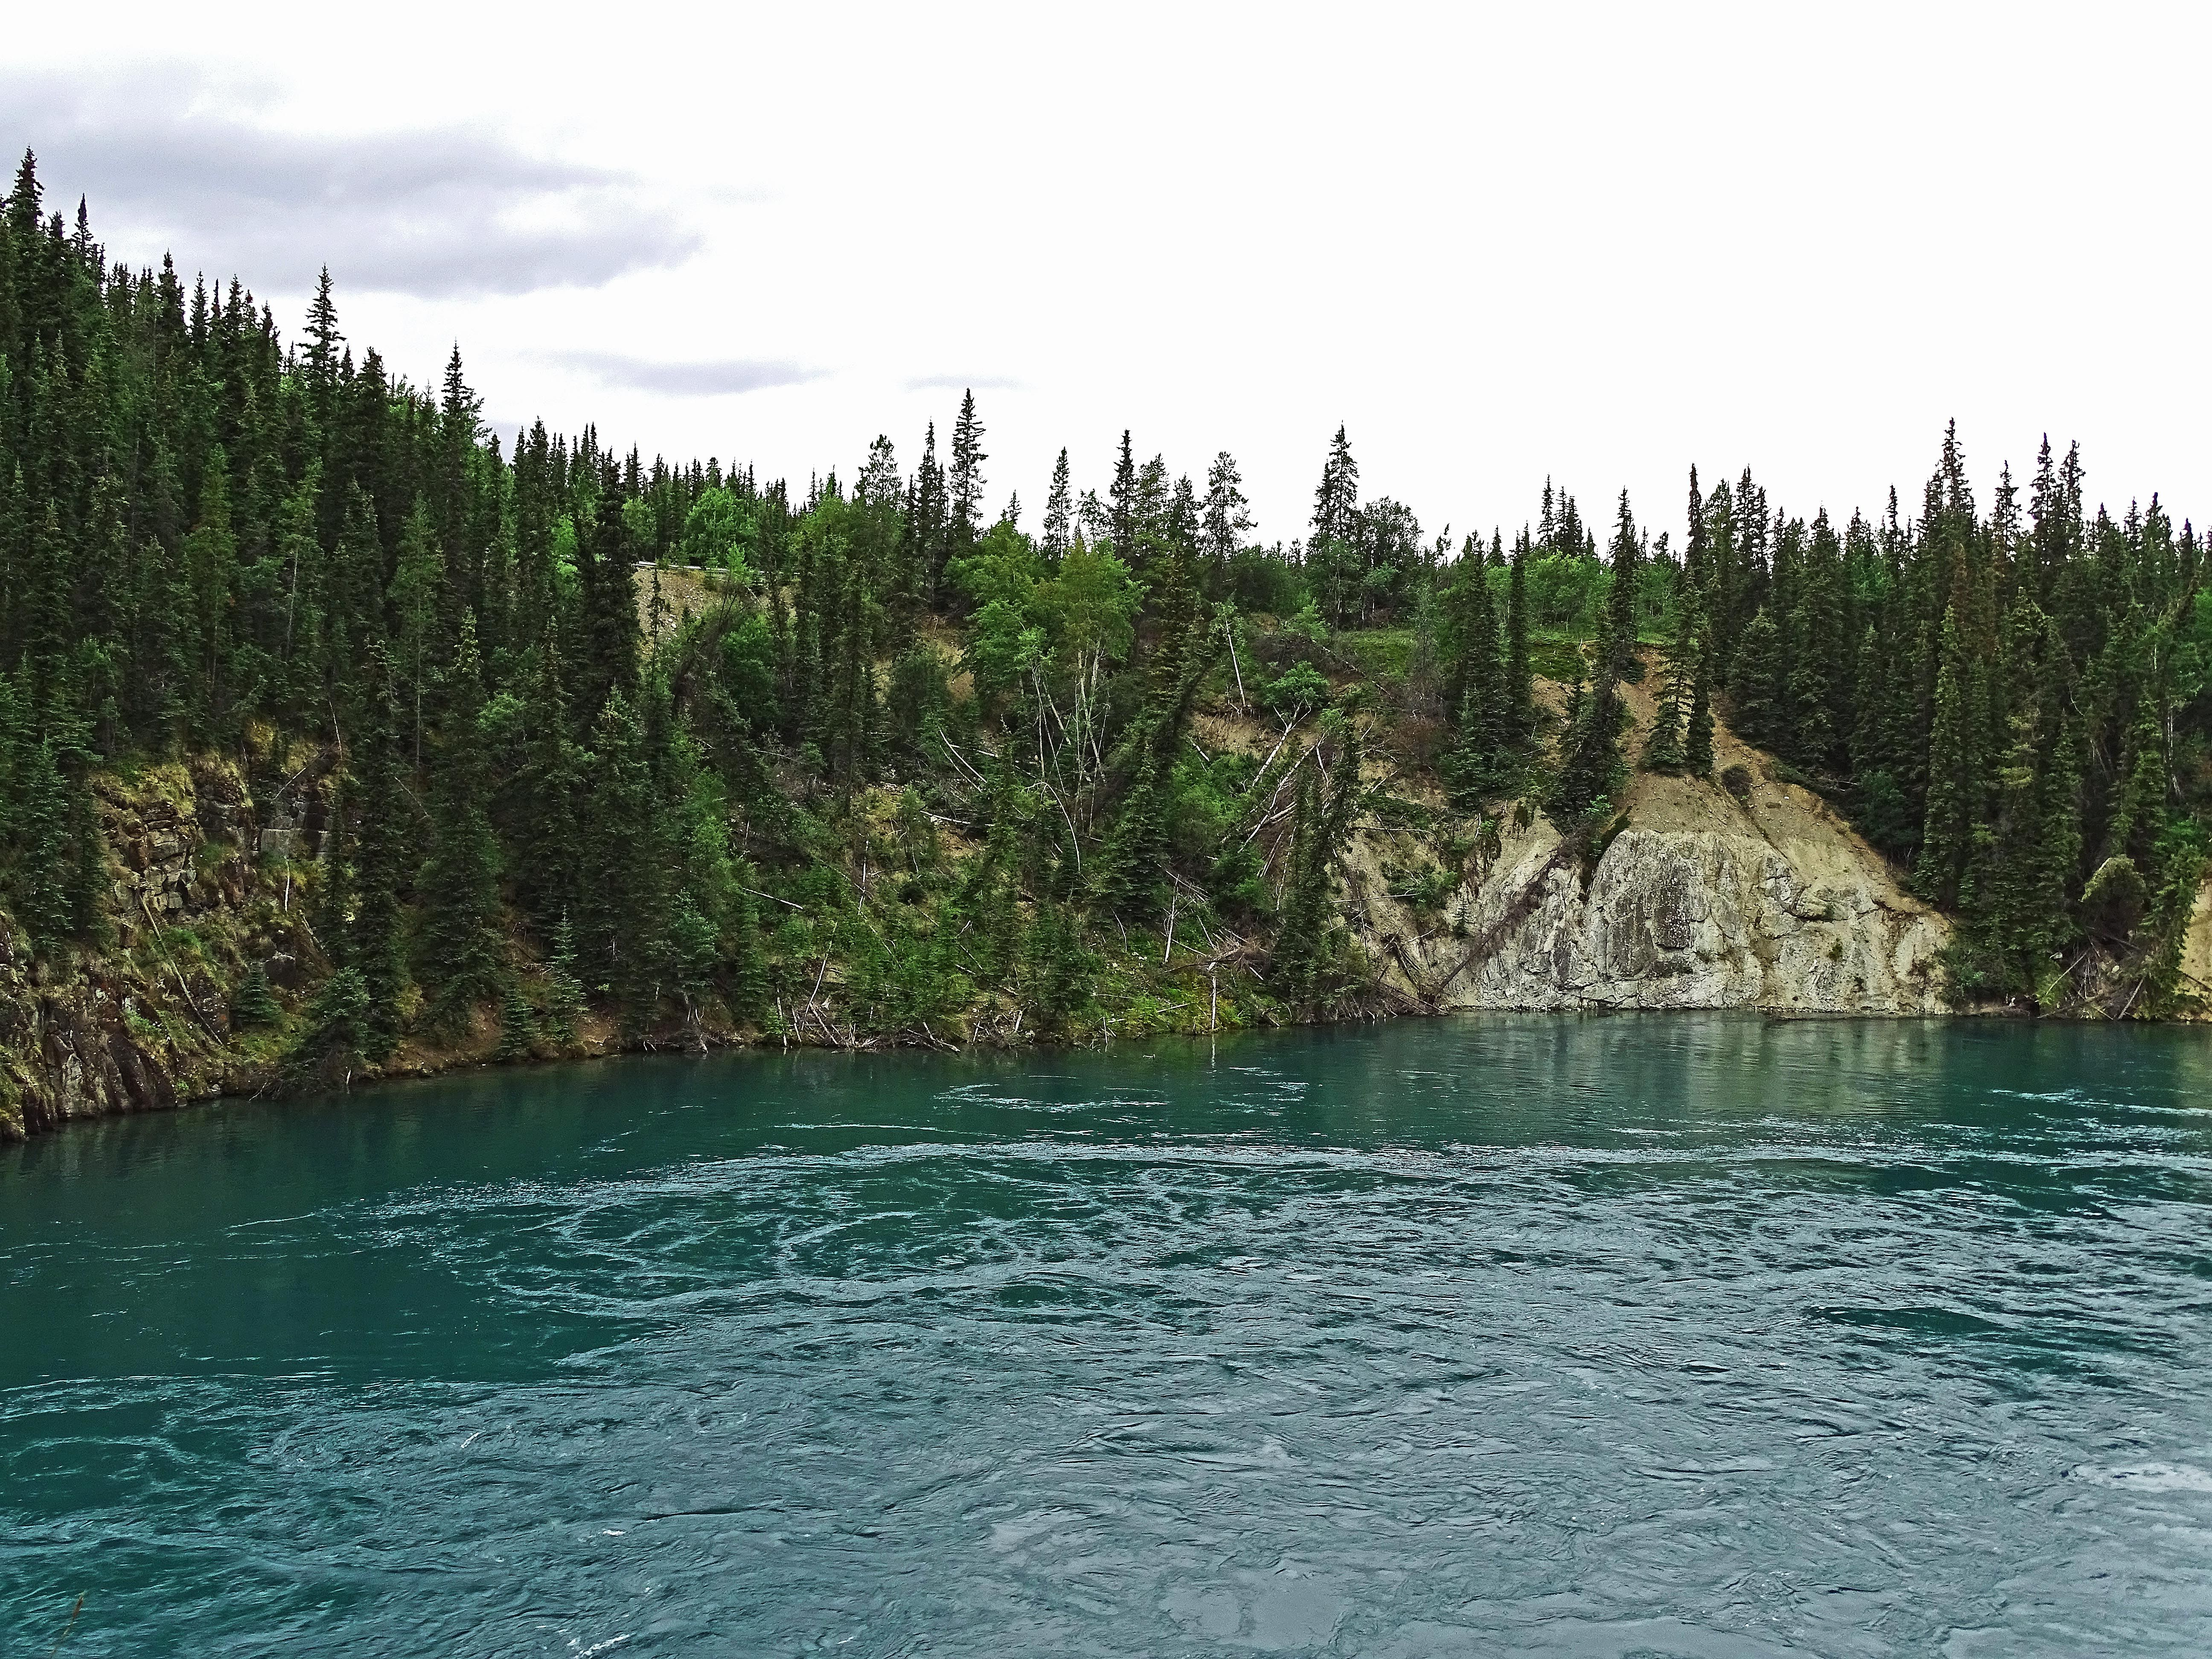 The water really is that turquoise color--it comes from glacier-fed waters